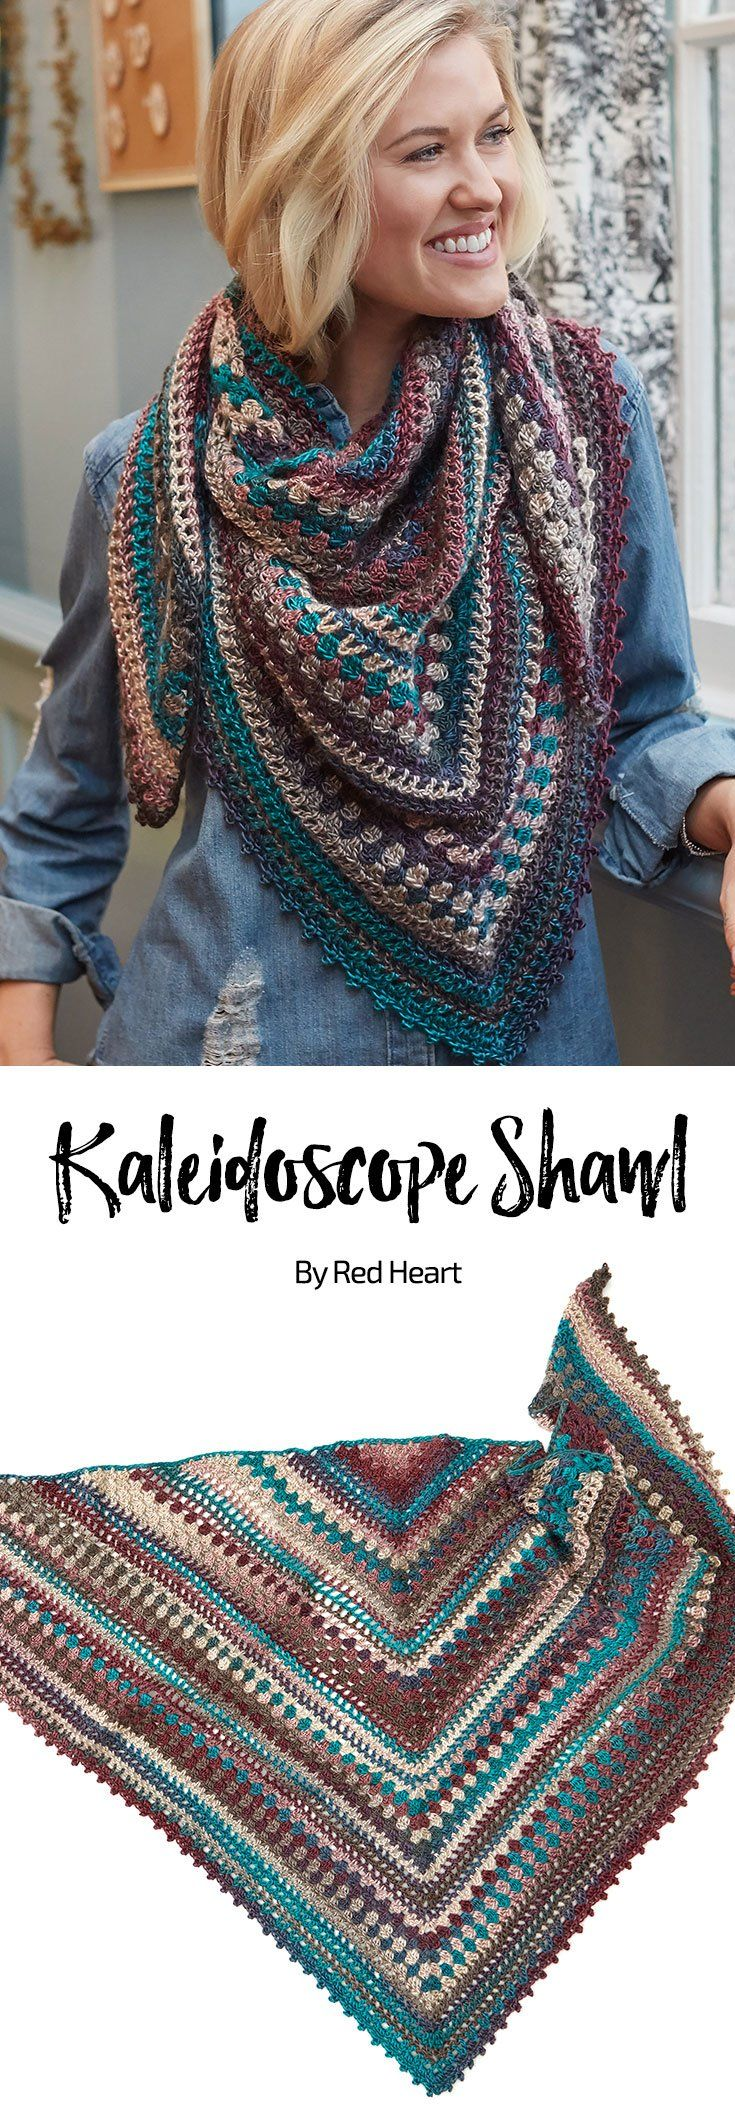 Kaleidoscope Shawl free crochet pattern in Unforgettable yarn.